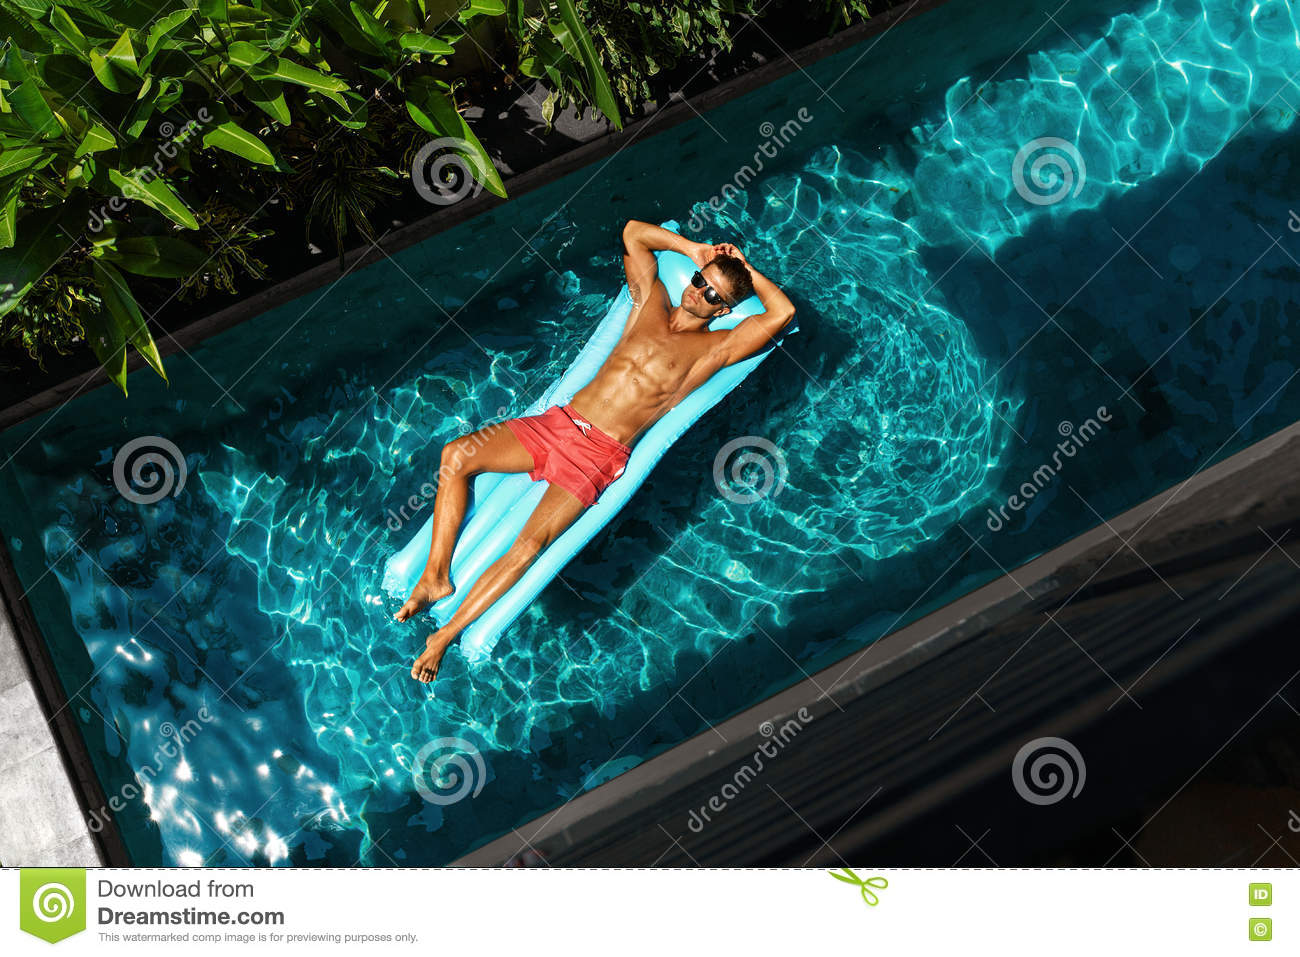 Man On Summer Vacation. Male Model Tanning In Swimming Pool